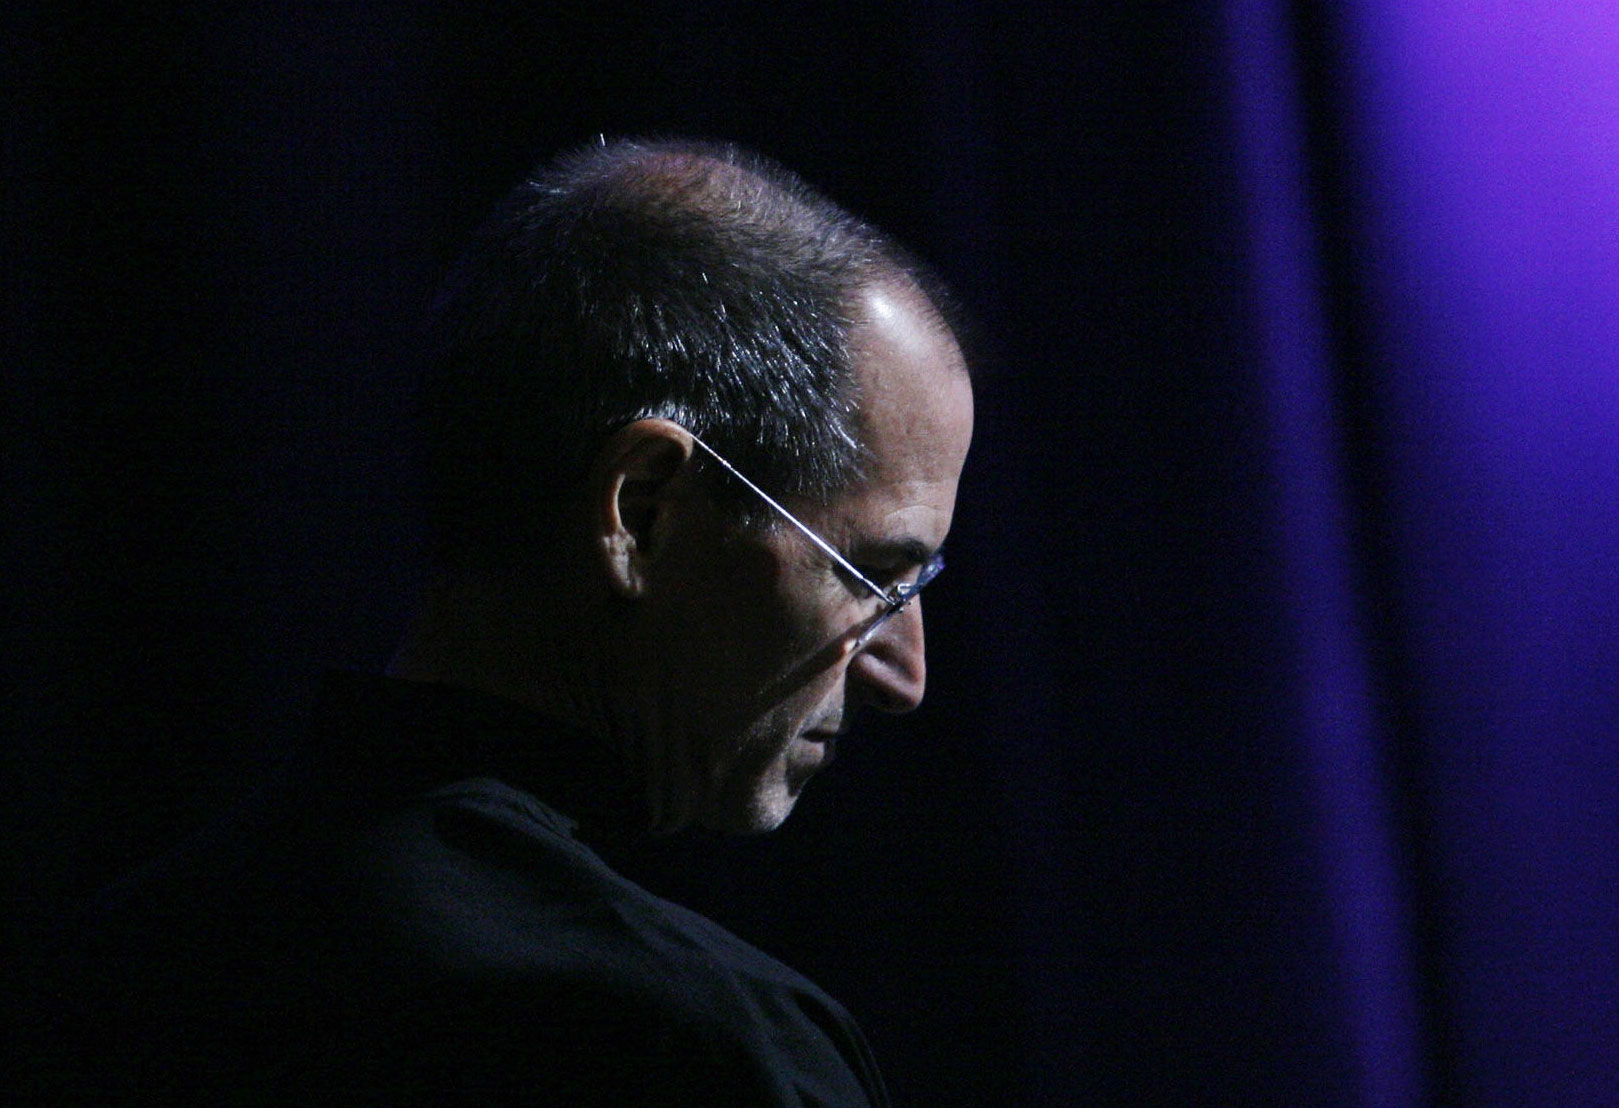 Apple Retail Stores Closing For Three Hours On Wednesday To Celebrate Steve Jobs' Life